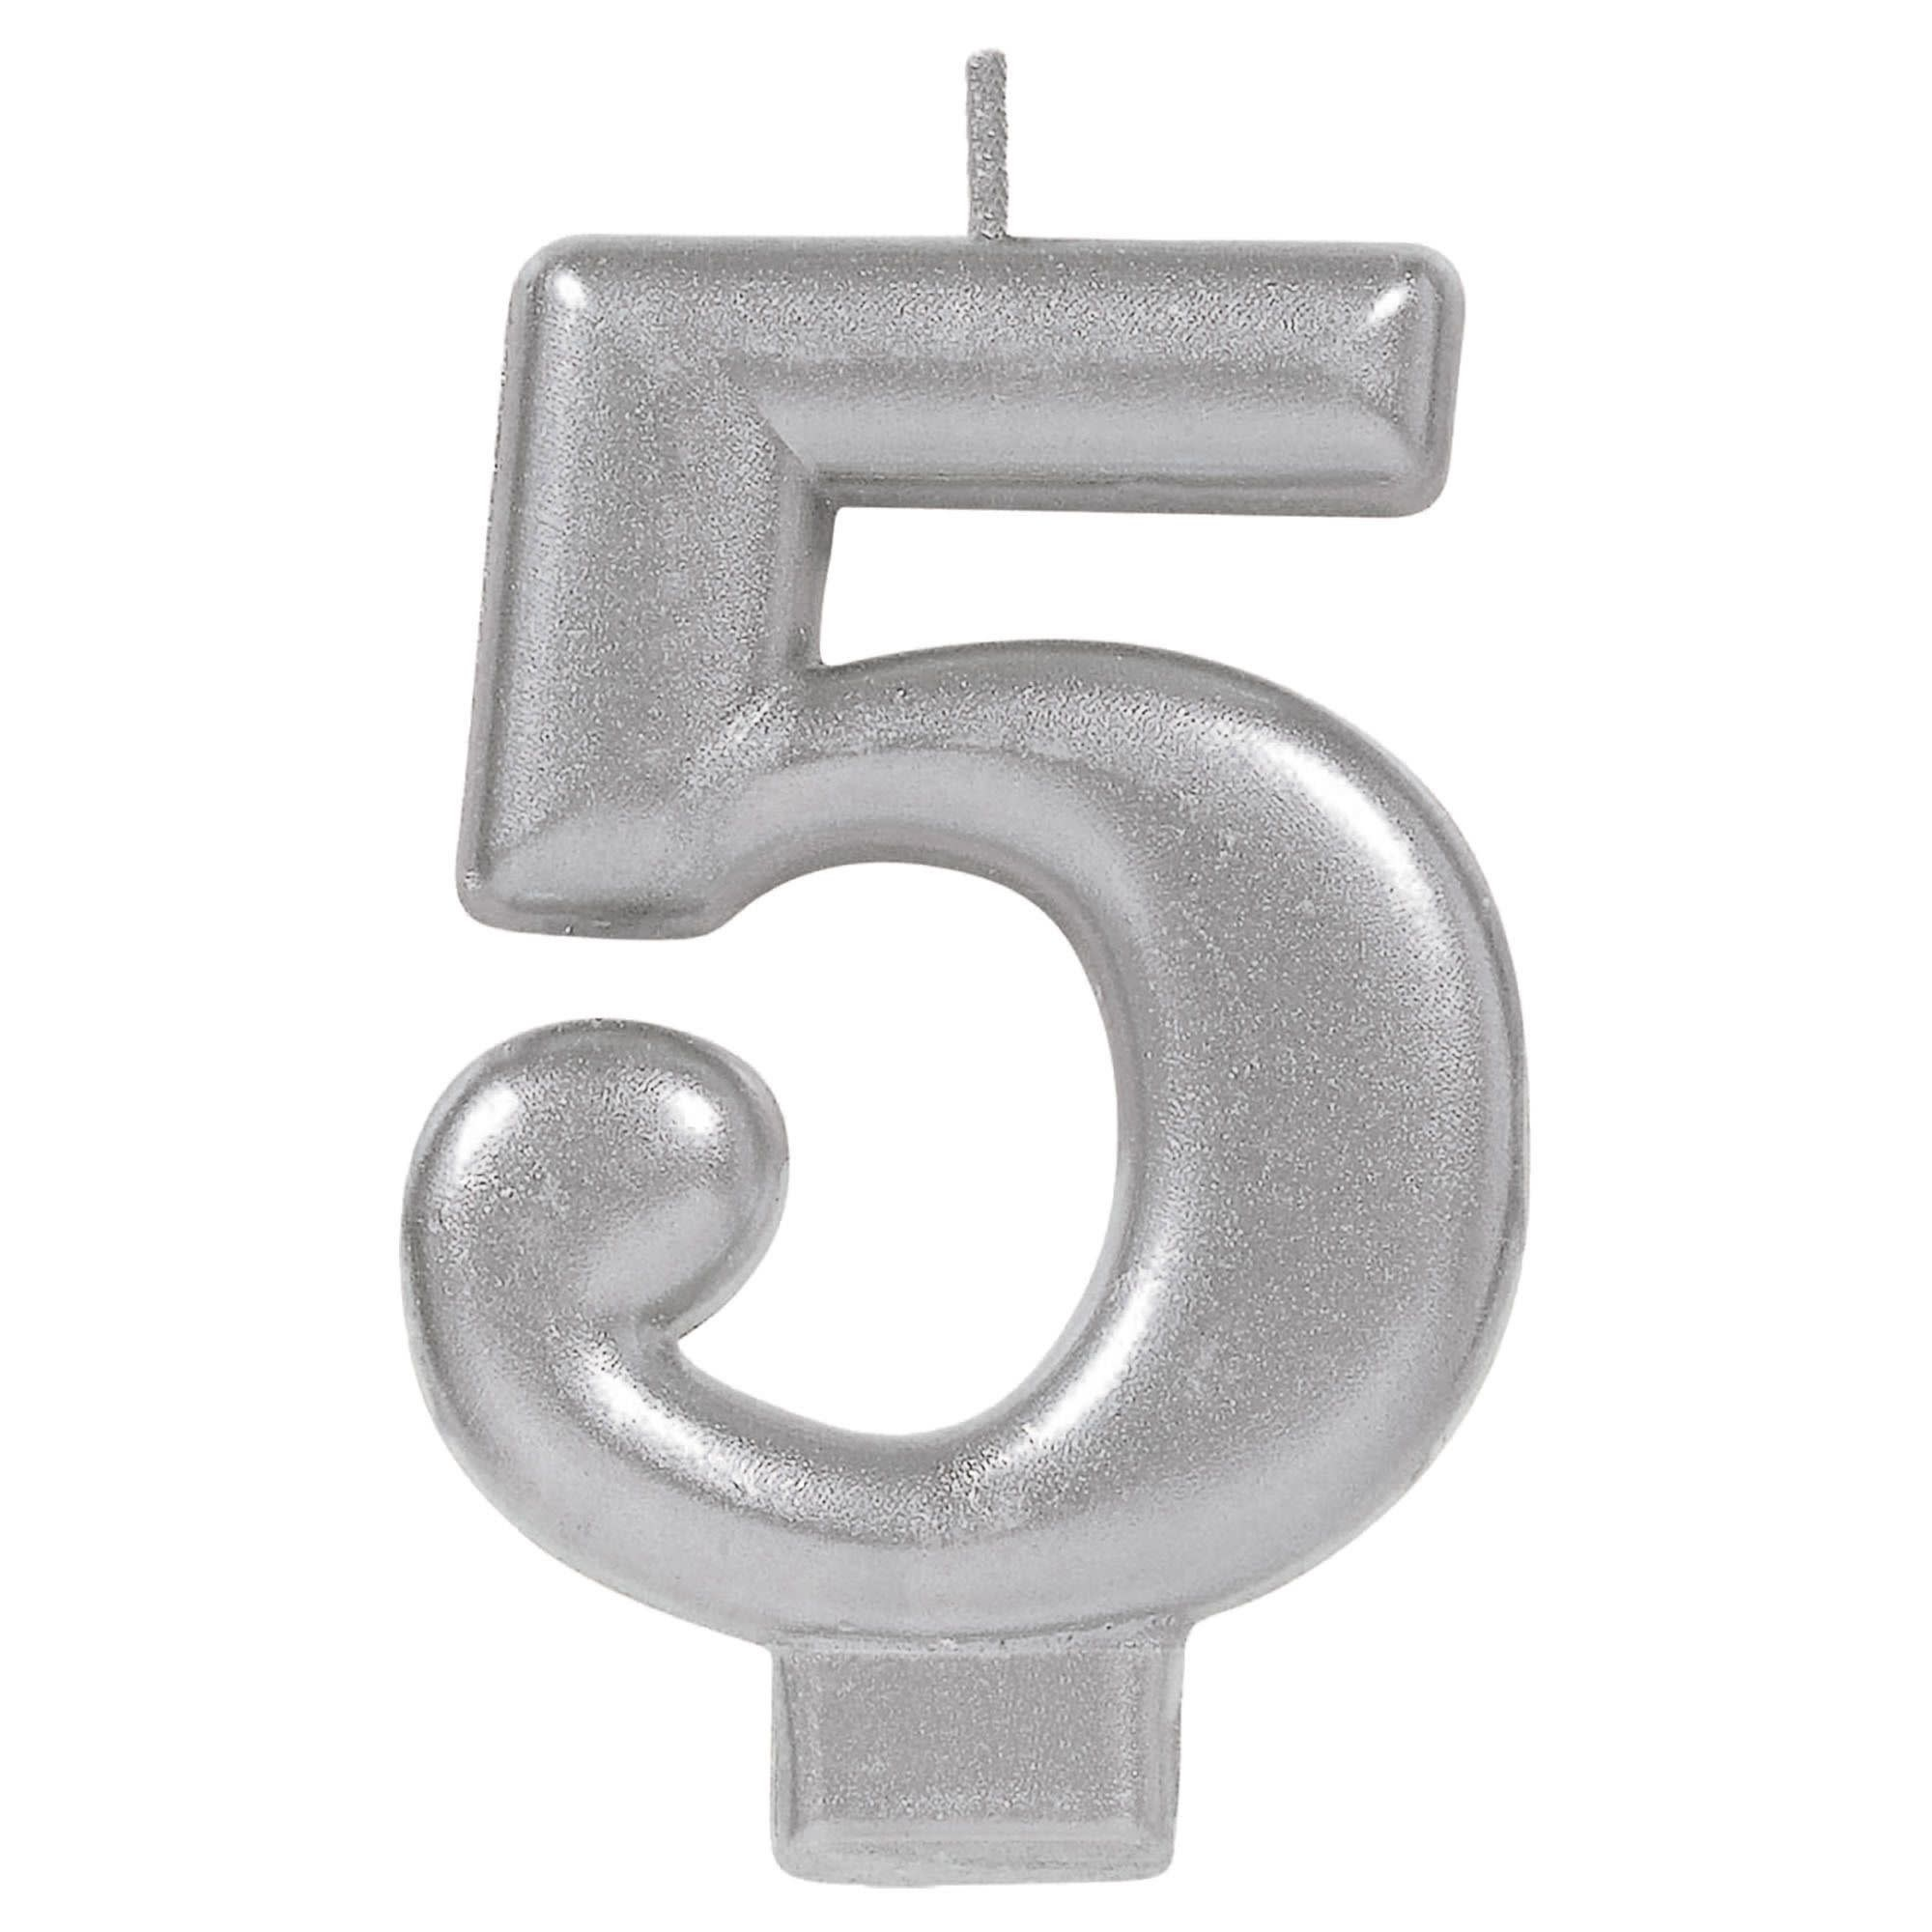 Numeral Metallic Candle #5 - Silver